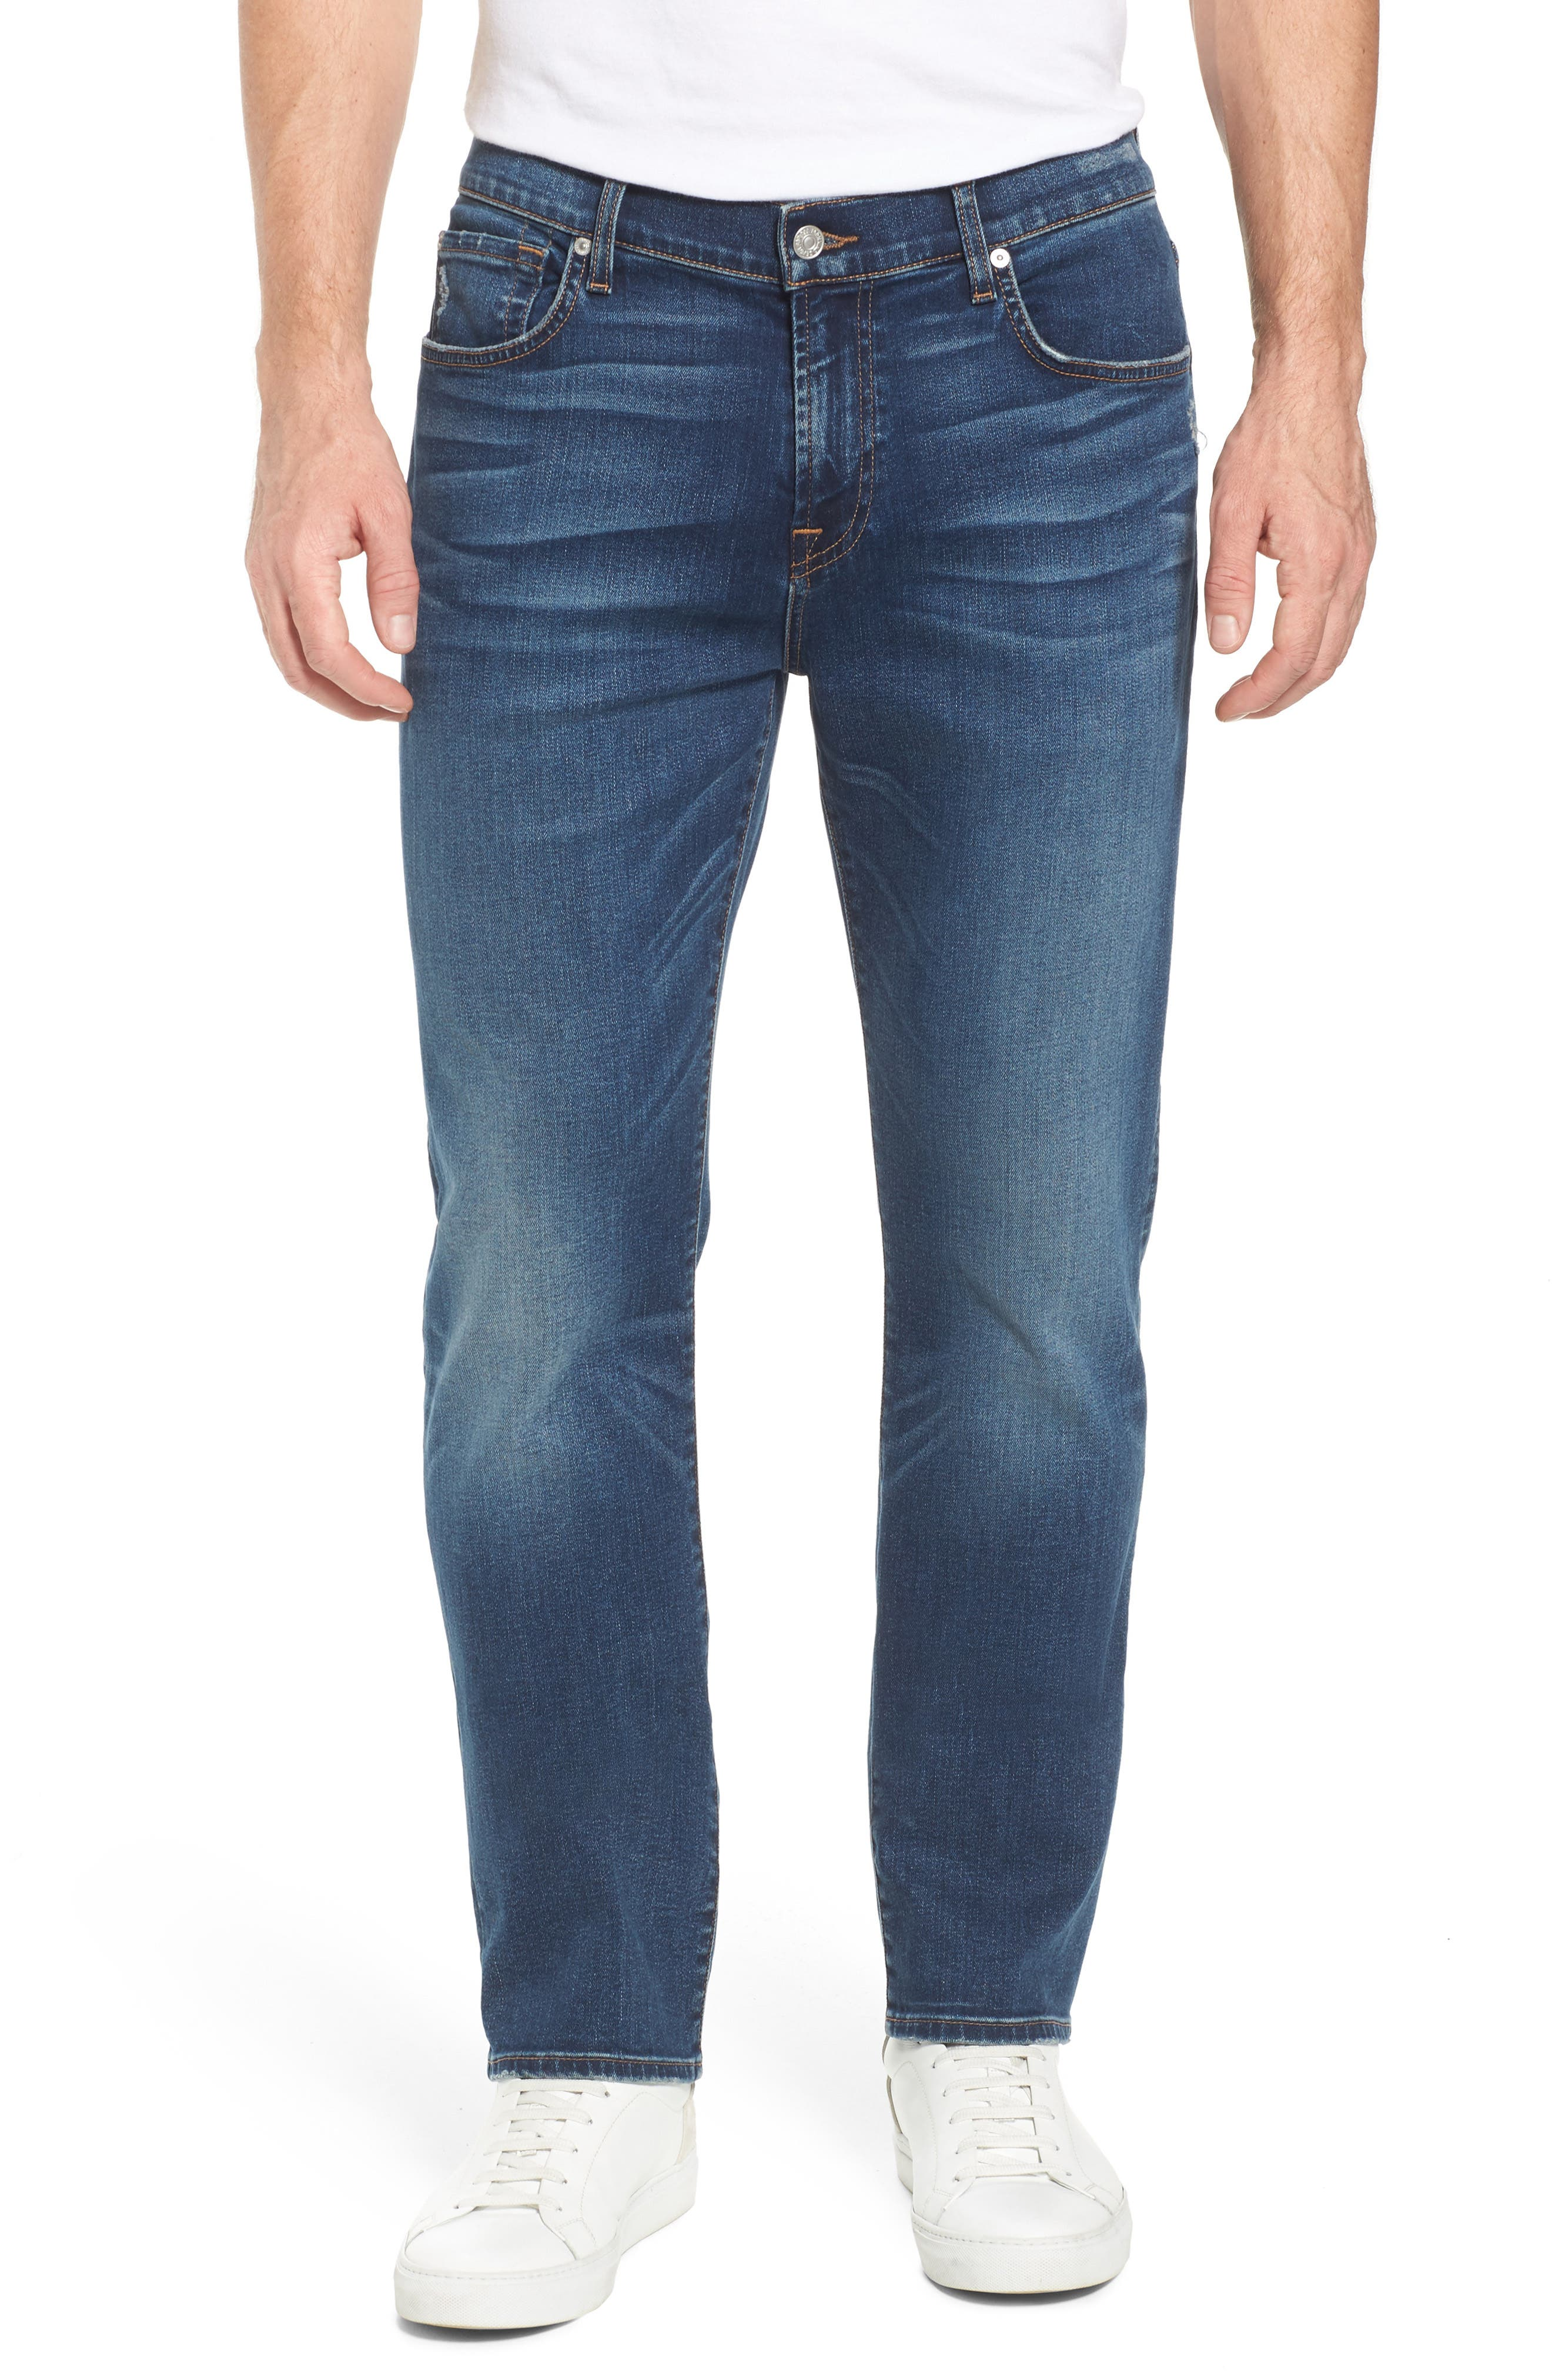 Alternate Image 1 Selected - 7 For All Mankind® The Straight - Luxe Performance Slim Straight Leg Jeans (Union)